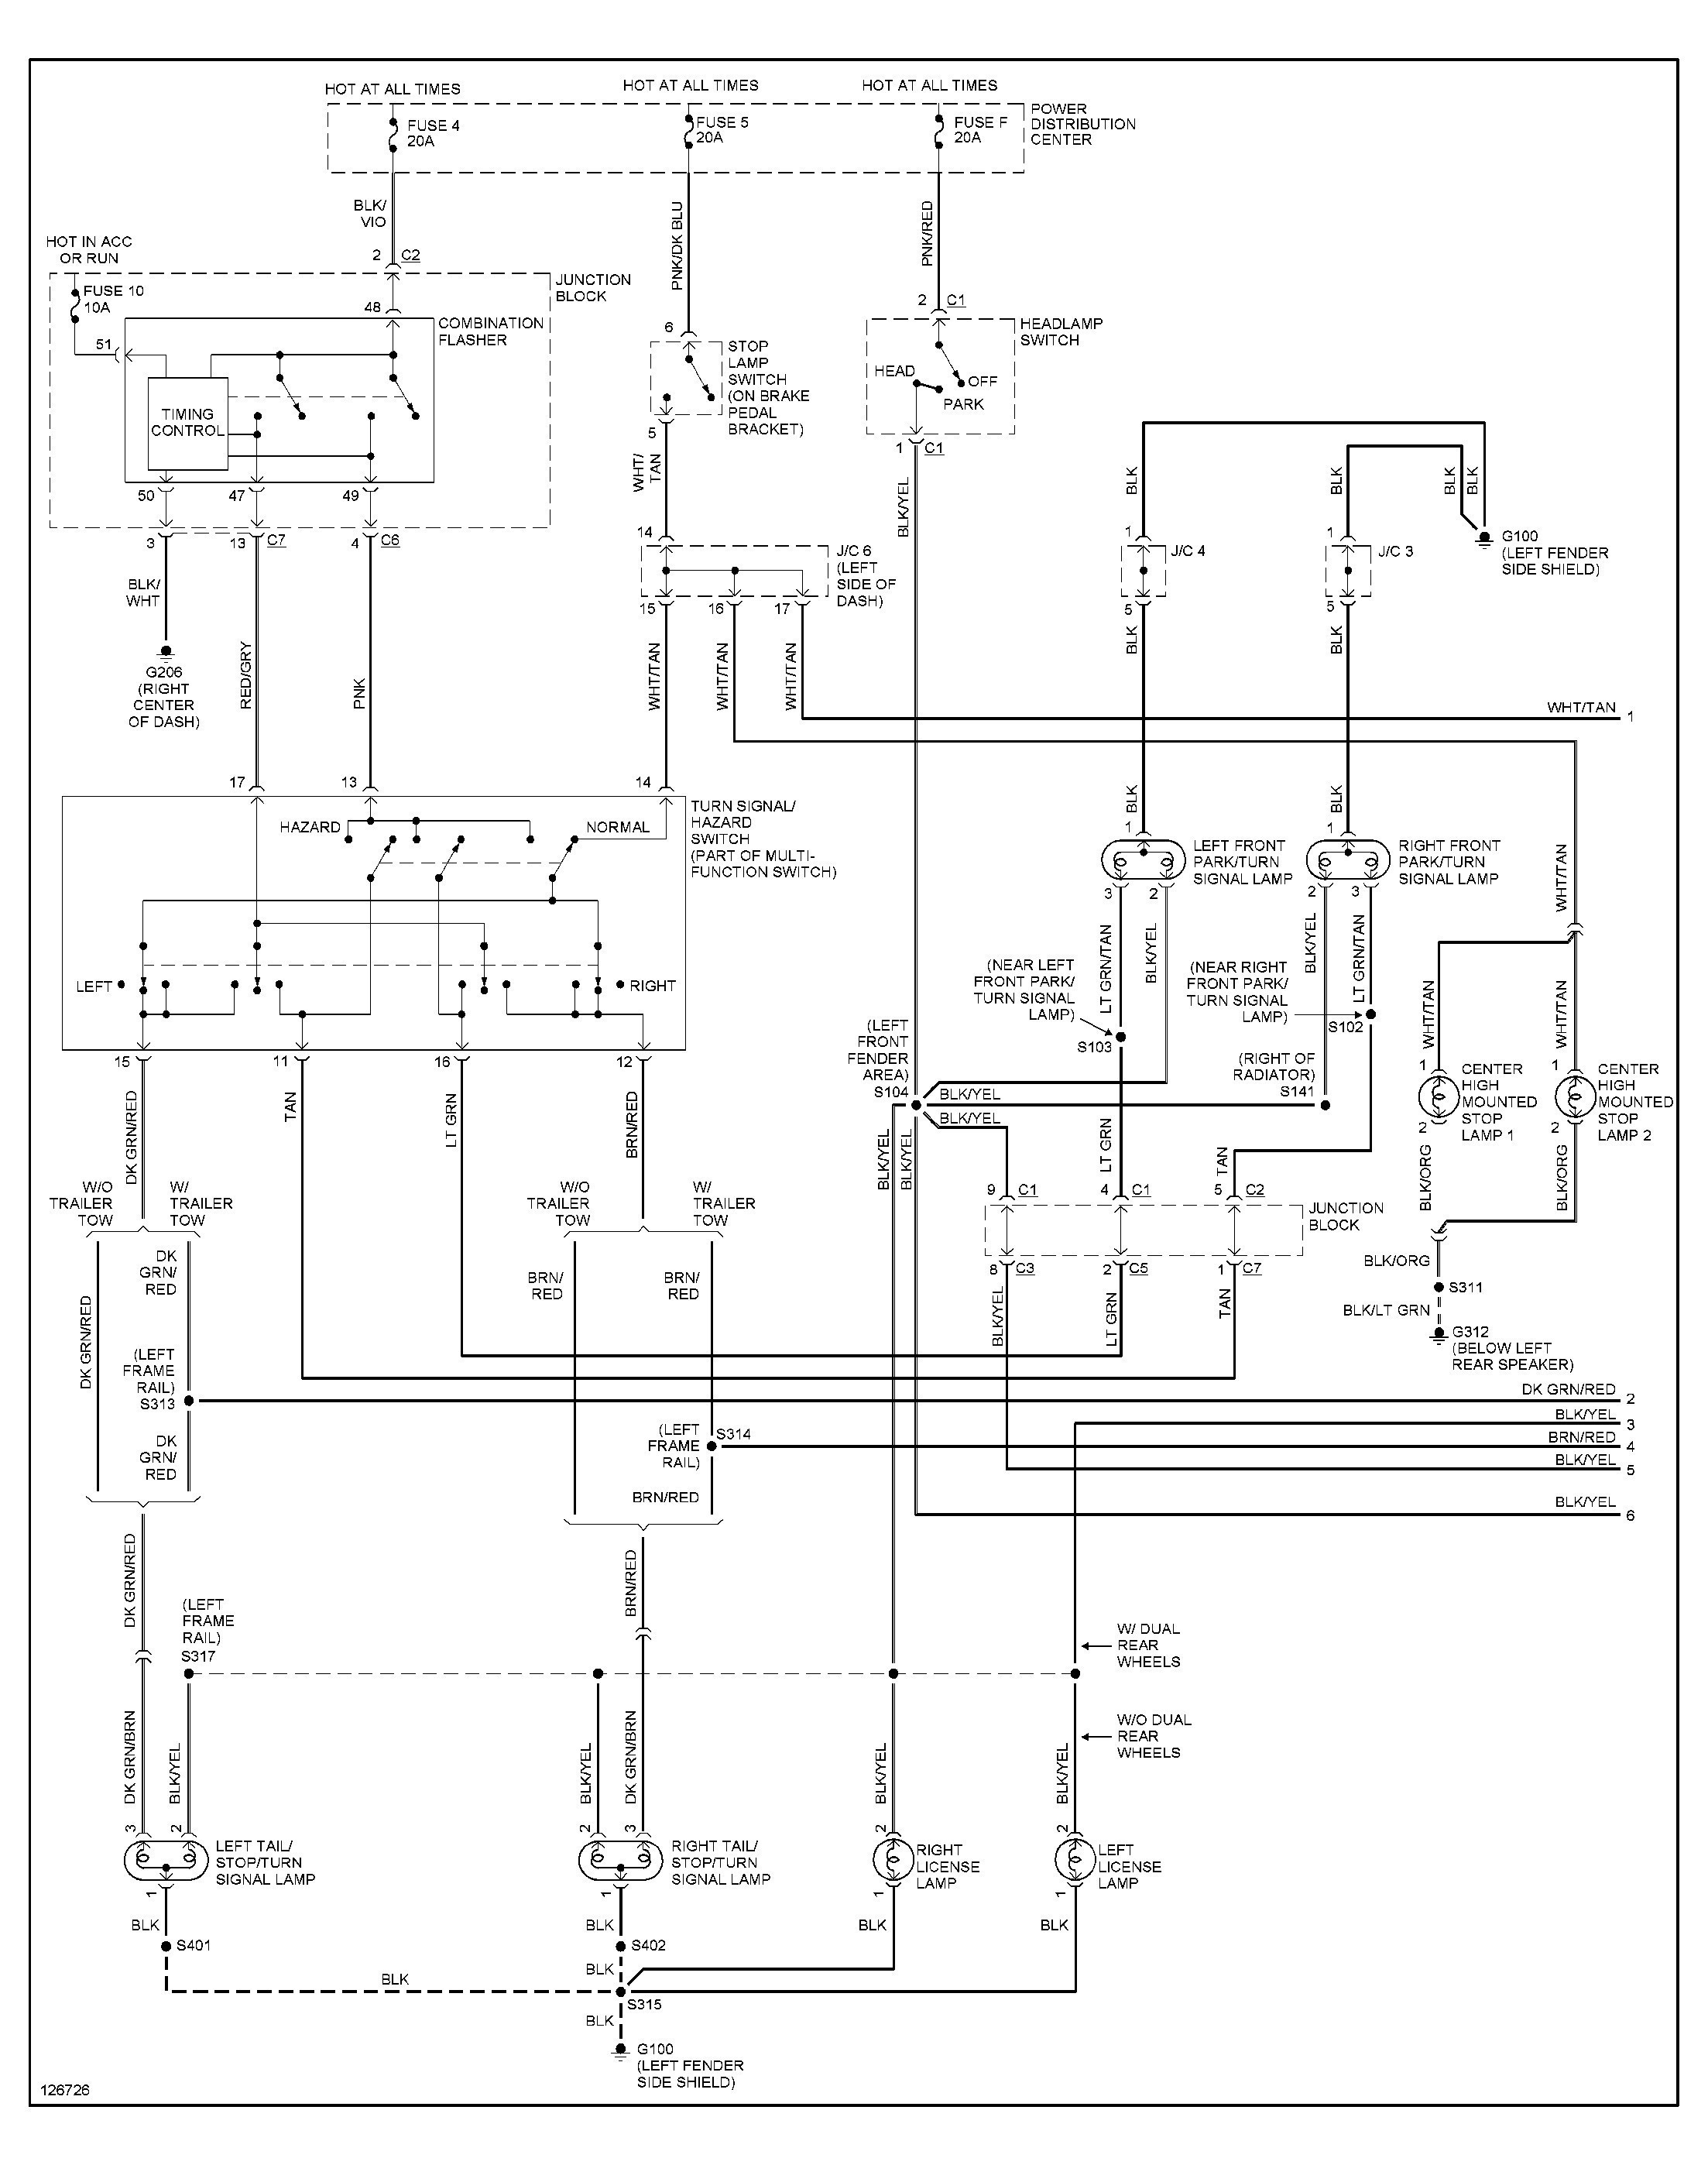 2001 dodge ram 1500 transmission wiring diagram get 2016 dodge ram trailer wiring diagram download dodge ram 1500 transmission wireing diagram